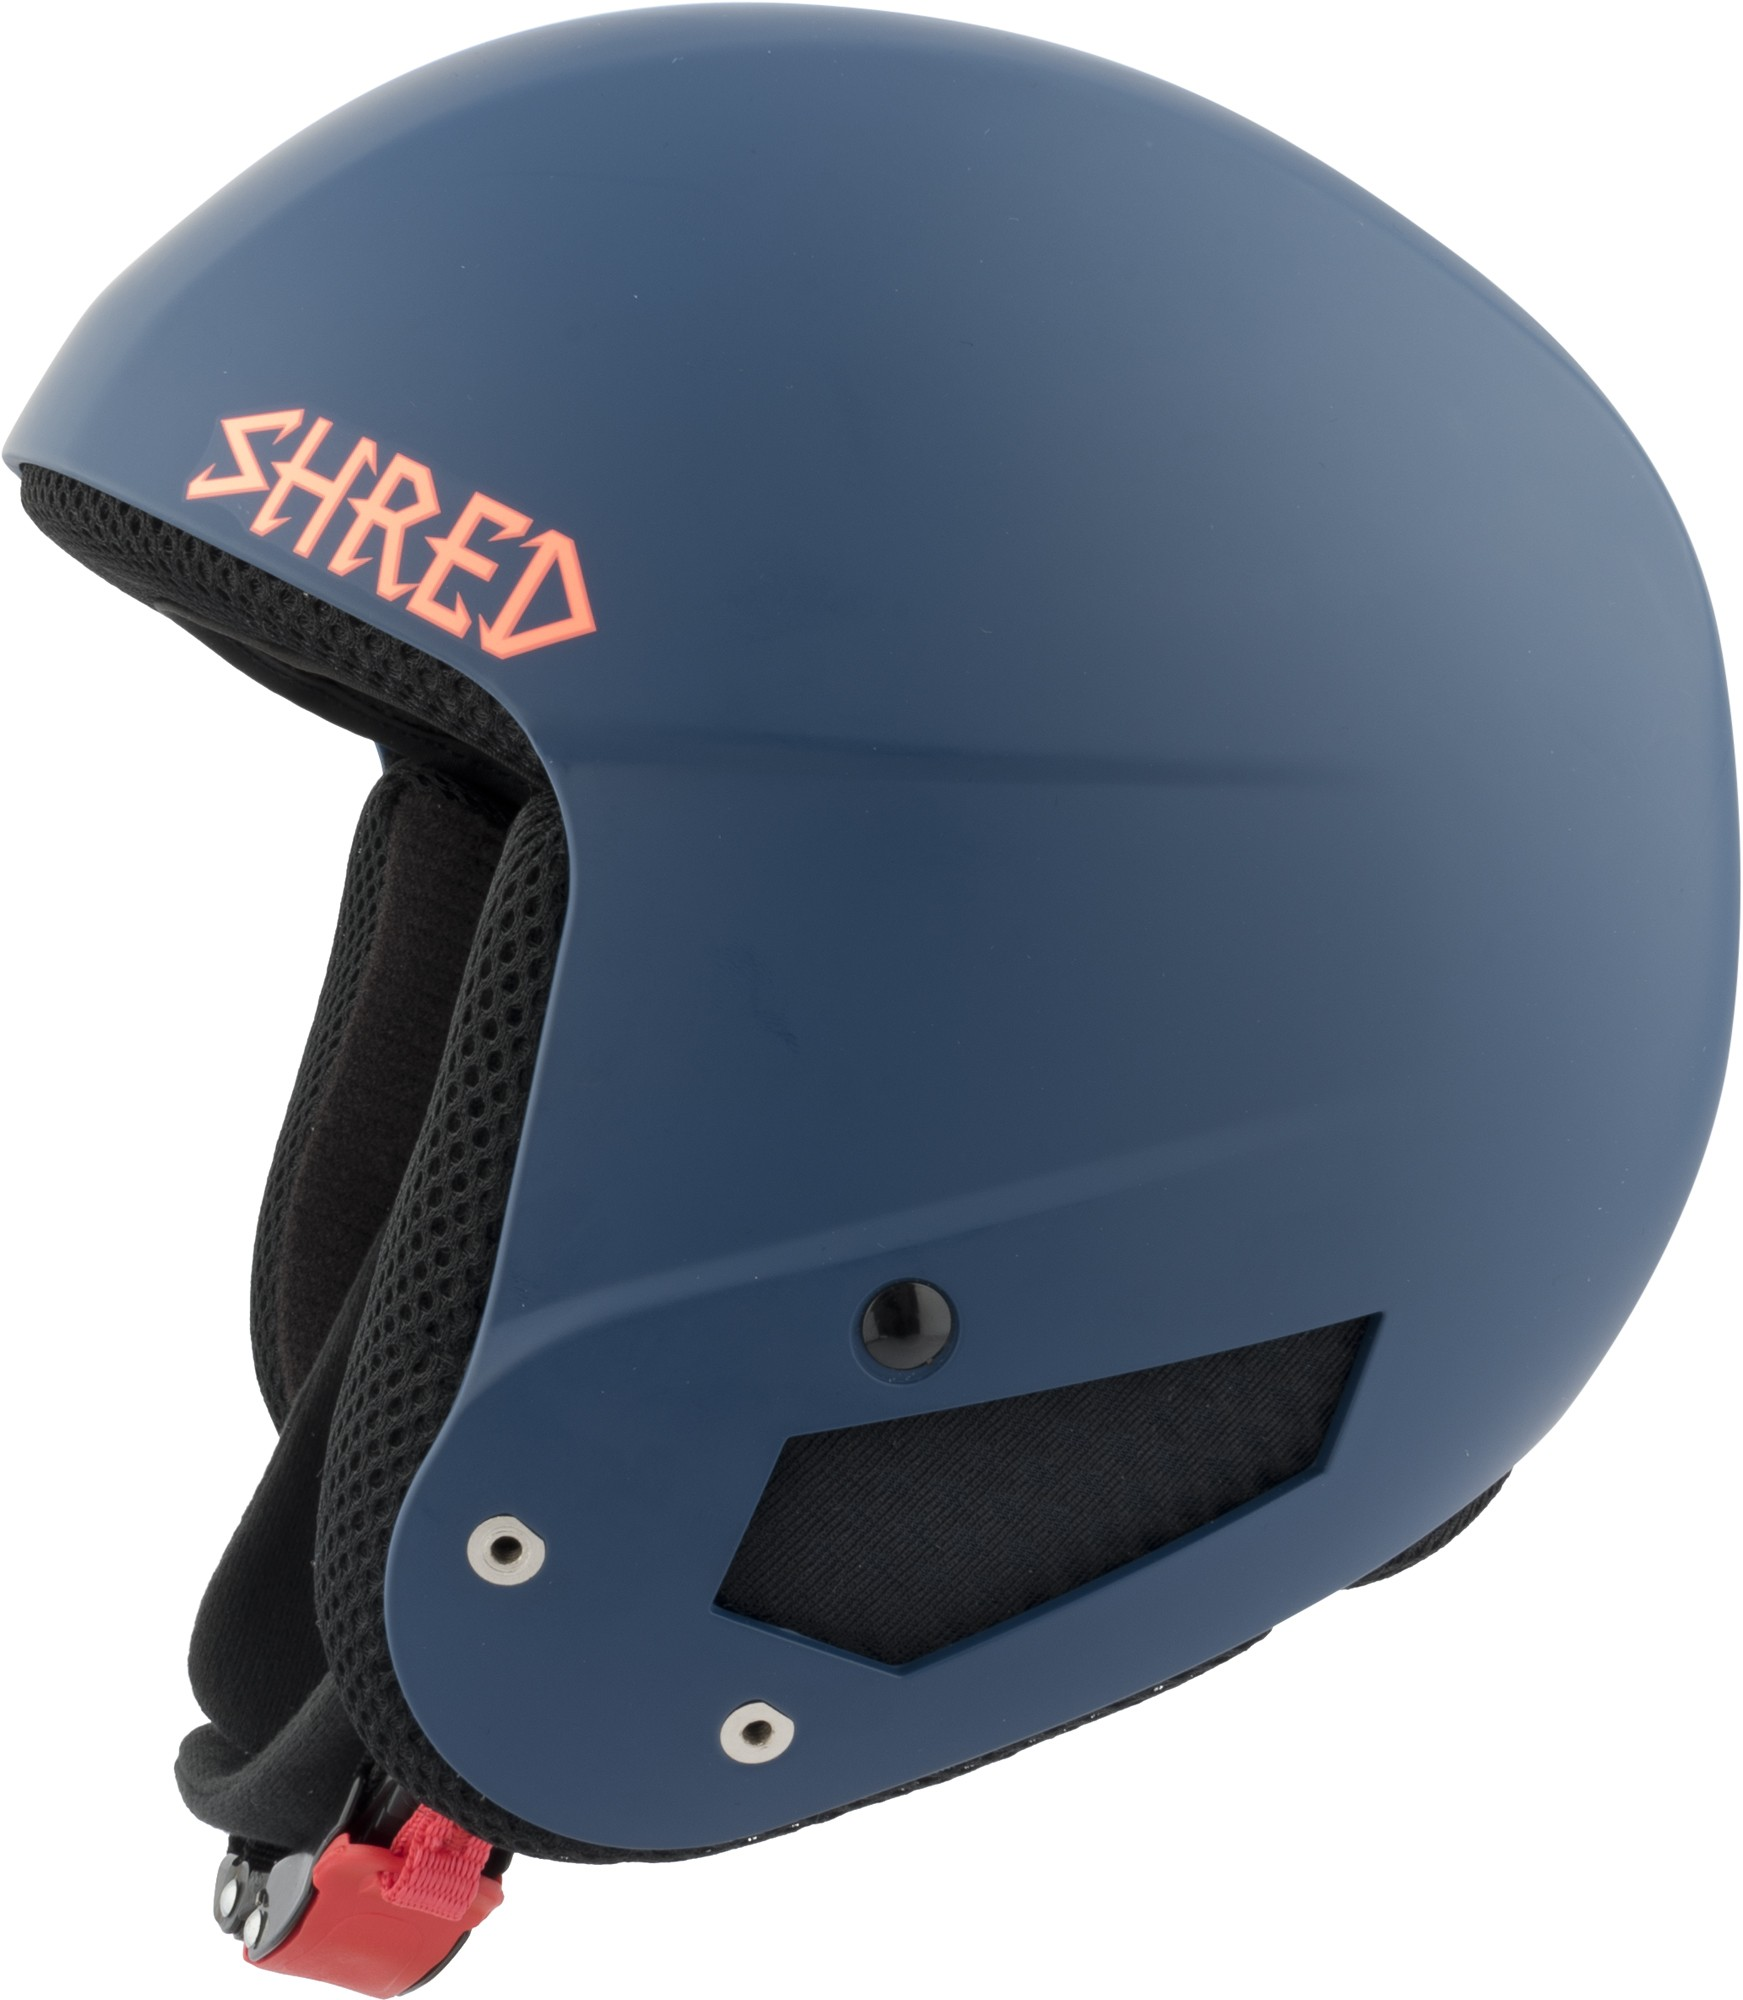 shred mega brain bucket rh grab